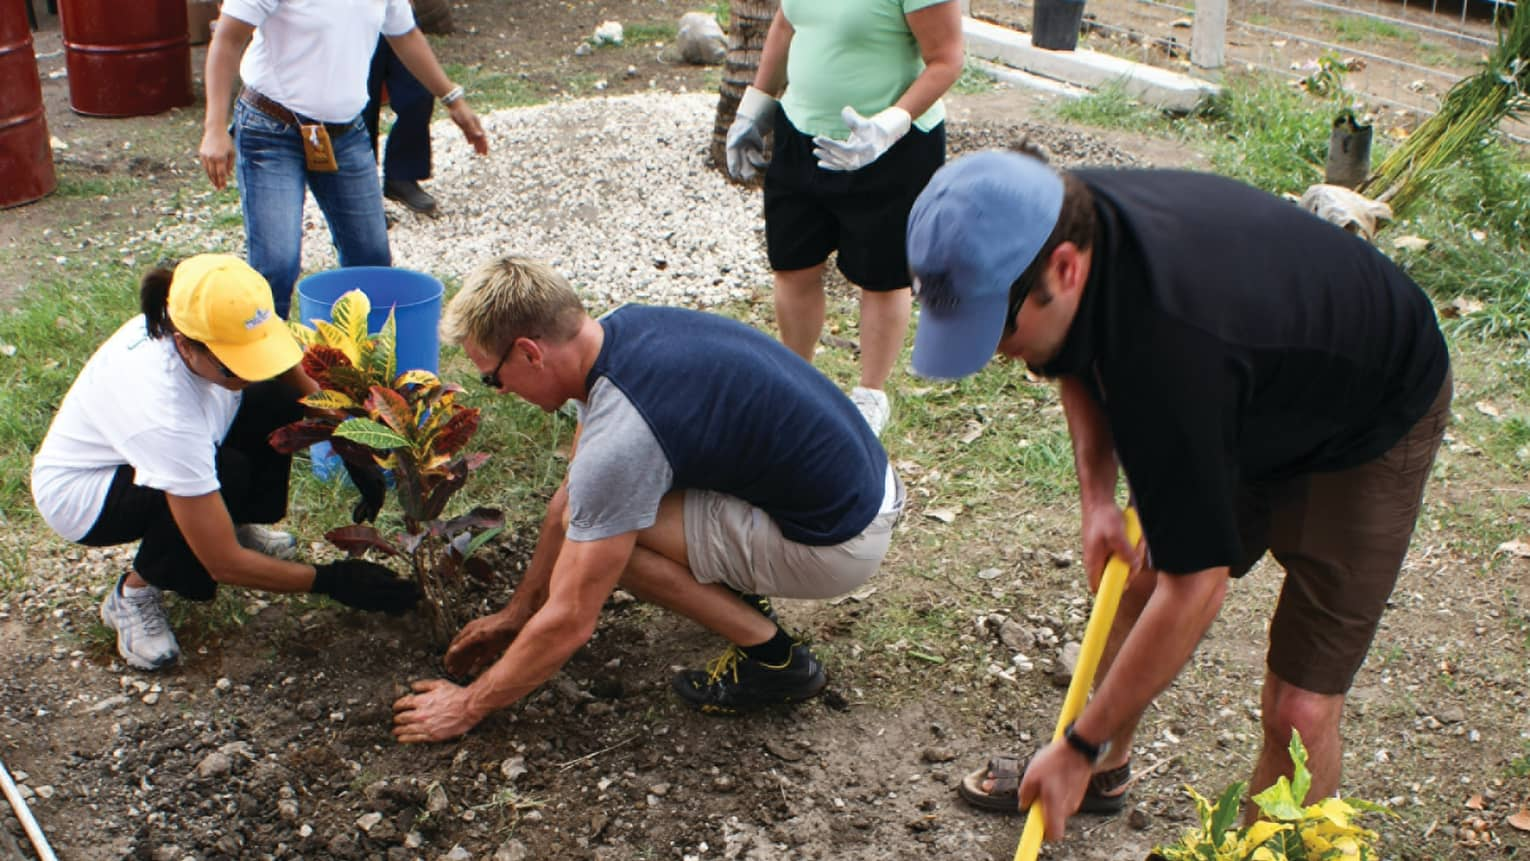 Group of adults wearing hats, garden gloves help plant trees and tropical plants